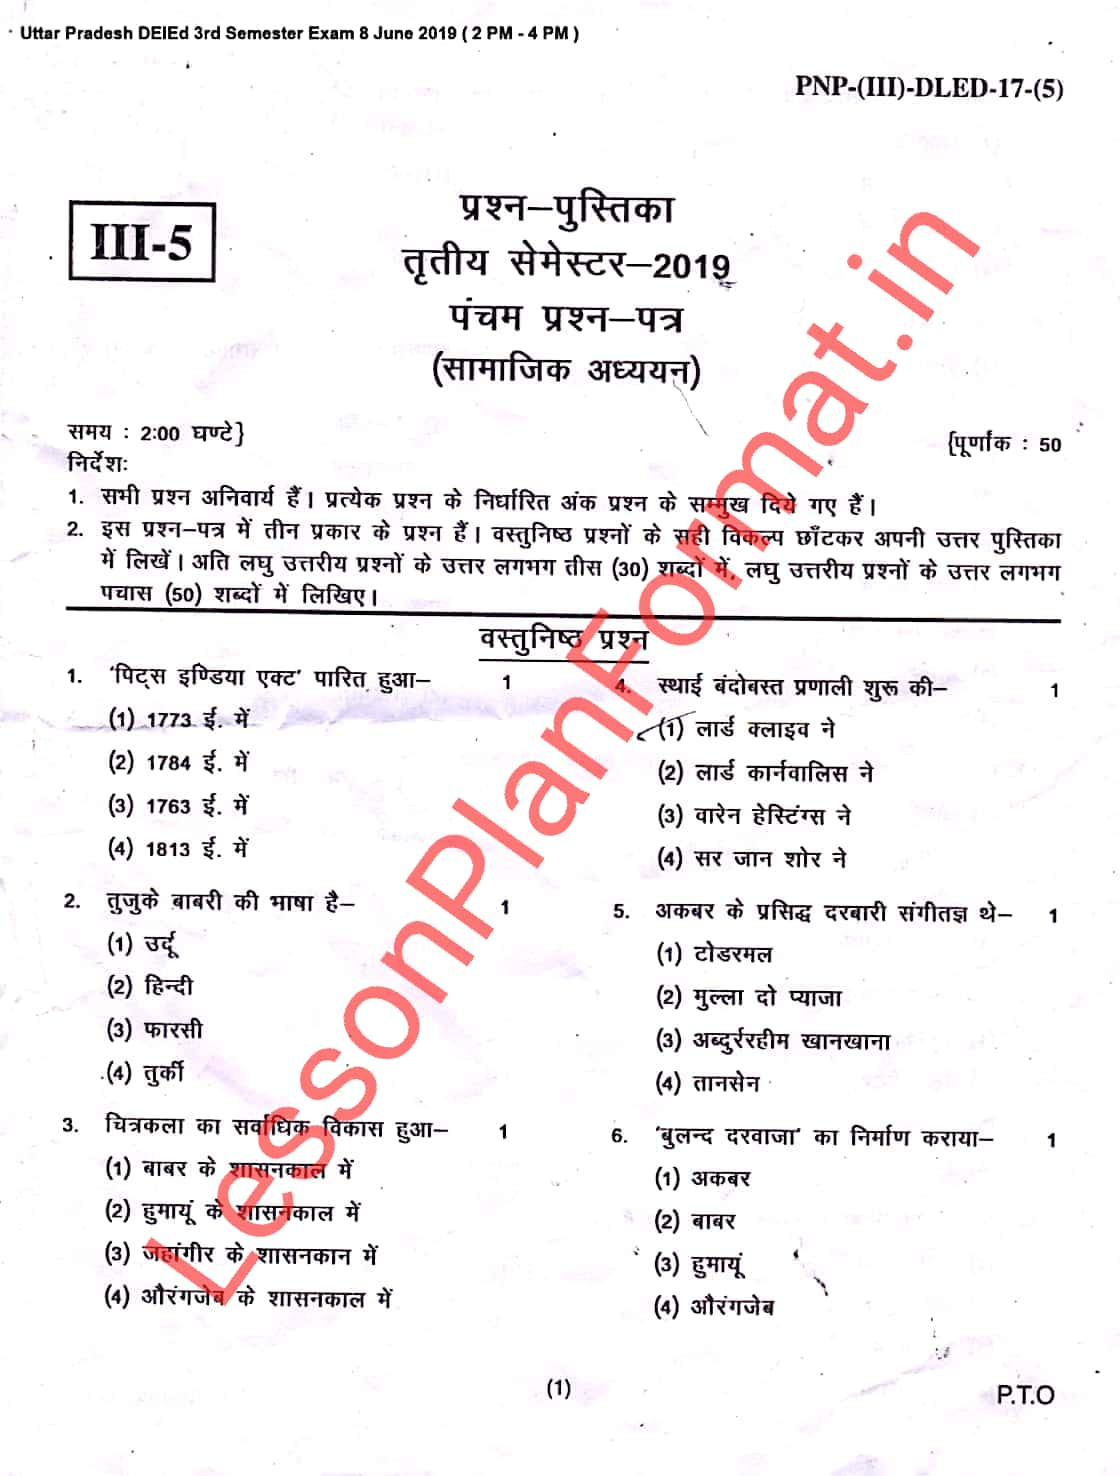 Deled 3rd Semester Exam Question Paper 2019